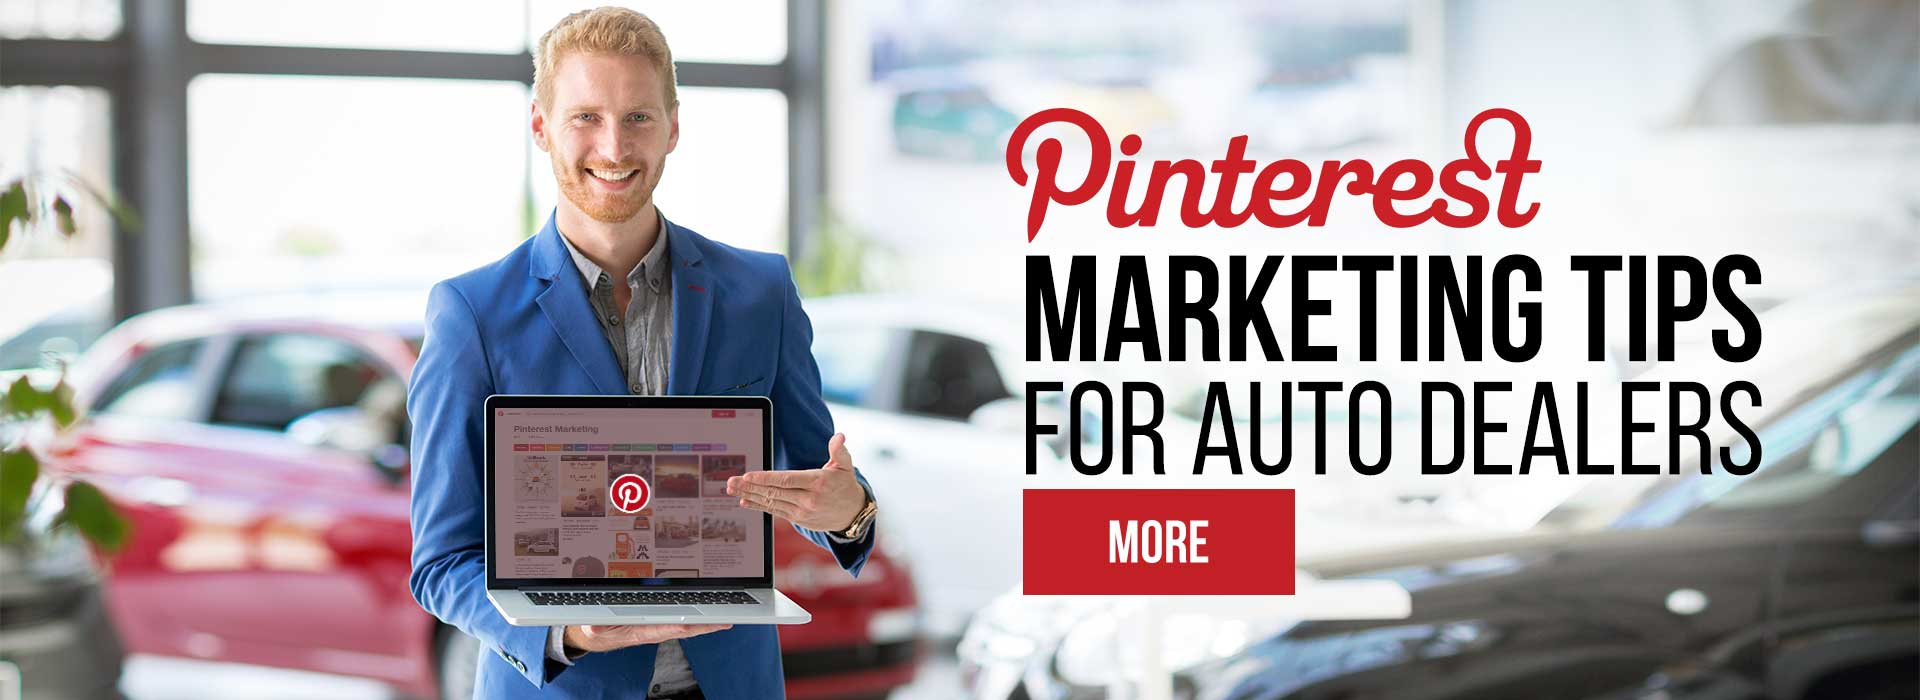 Pinterest Marketing Tips for Auto Dealers